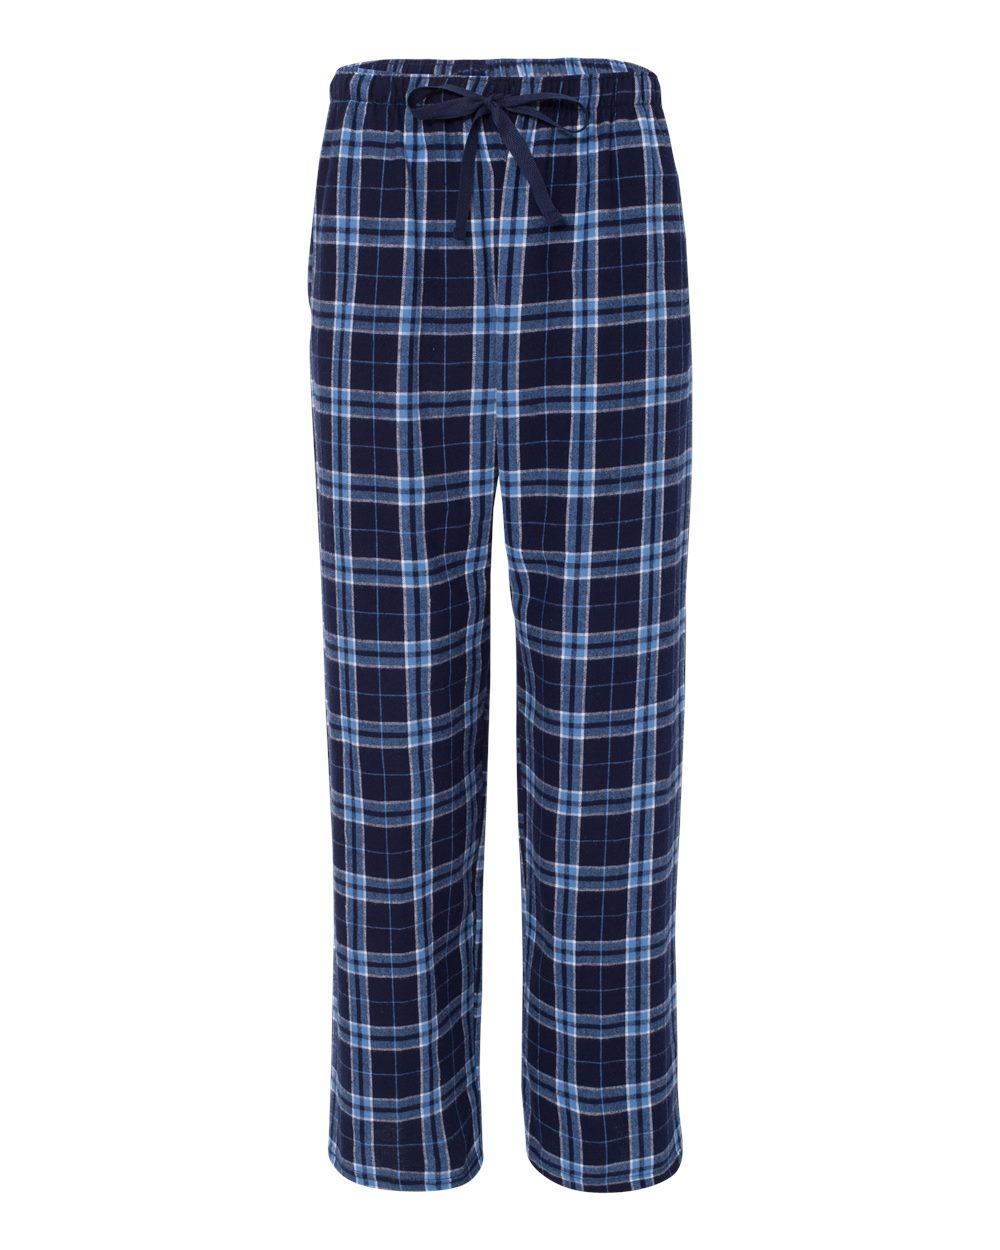 Boxercraft-Unisex-Flannel-Pants-With-Pockets-Pajama-Pants-F20-up-to-2XL thumbnail 24